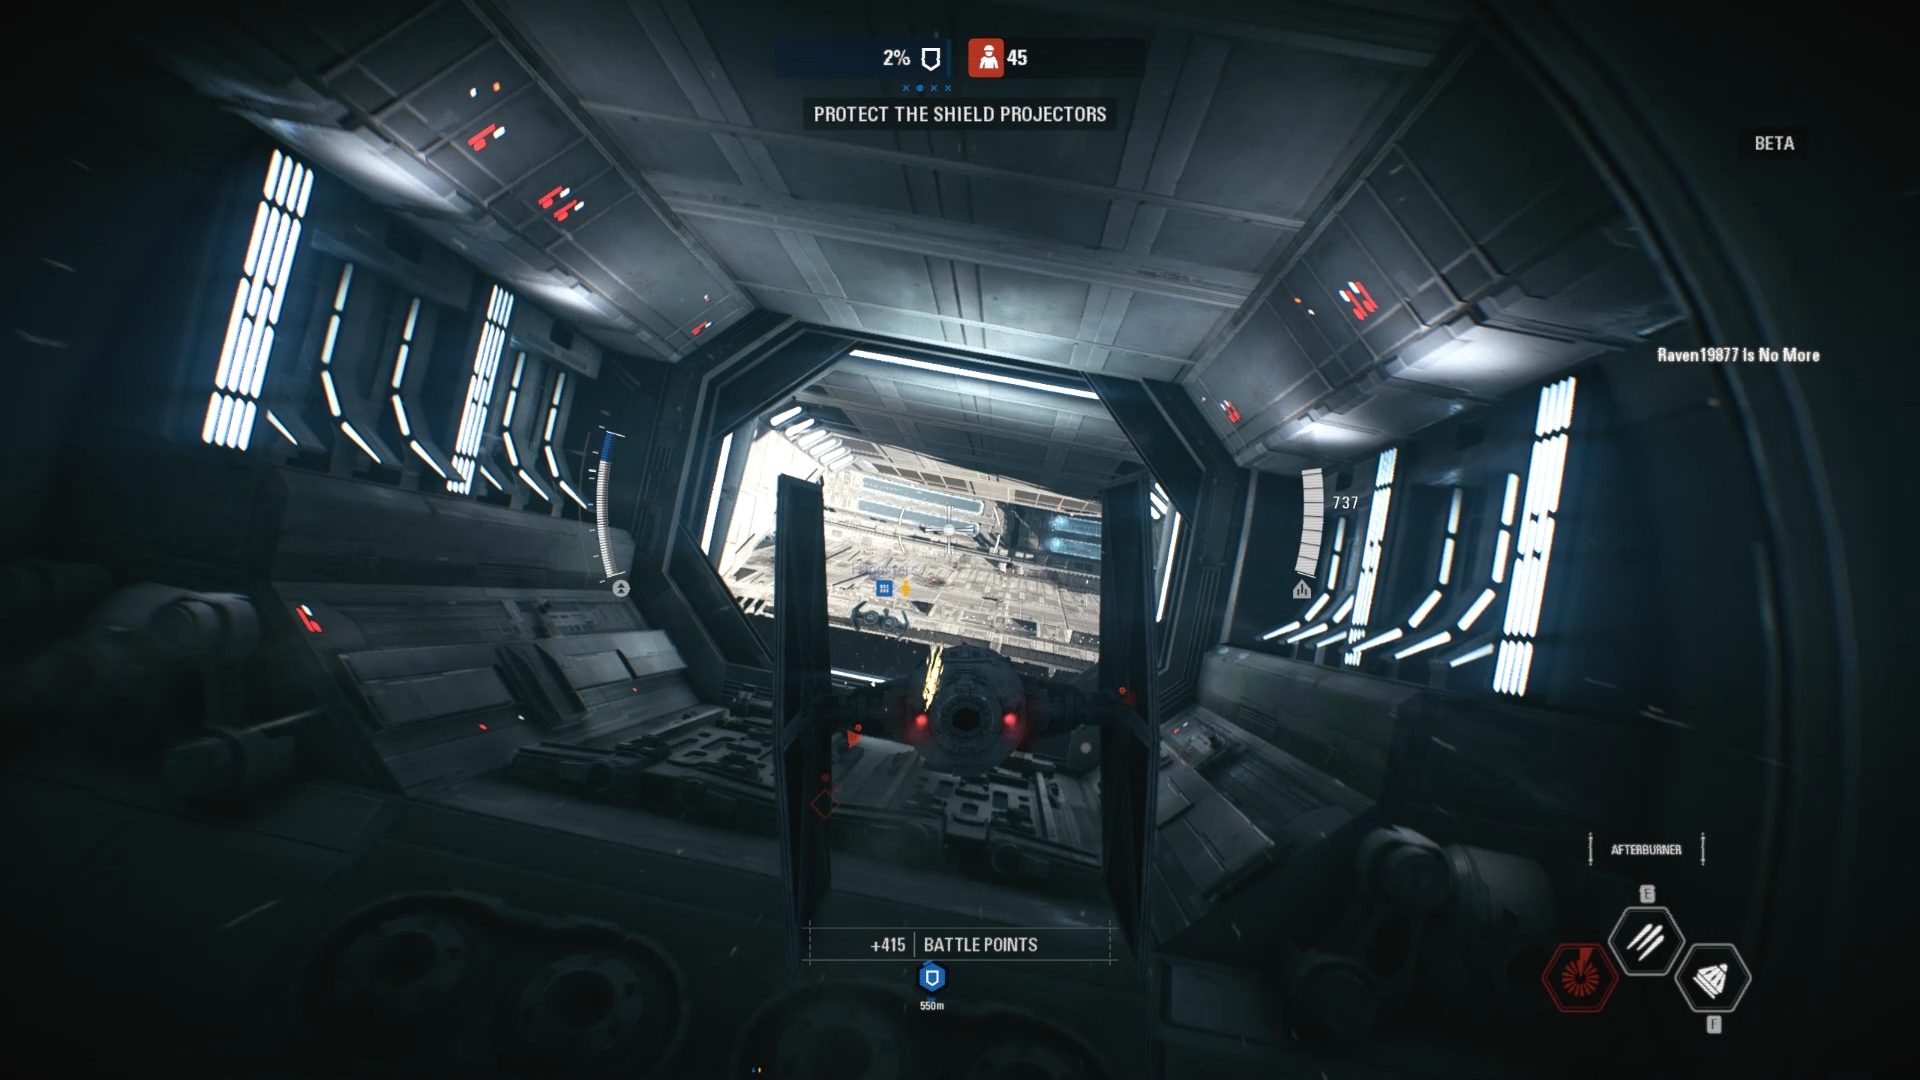 battlefront_2_beta_capture_5